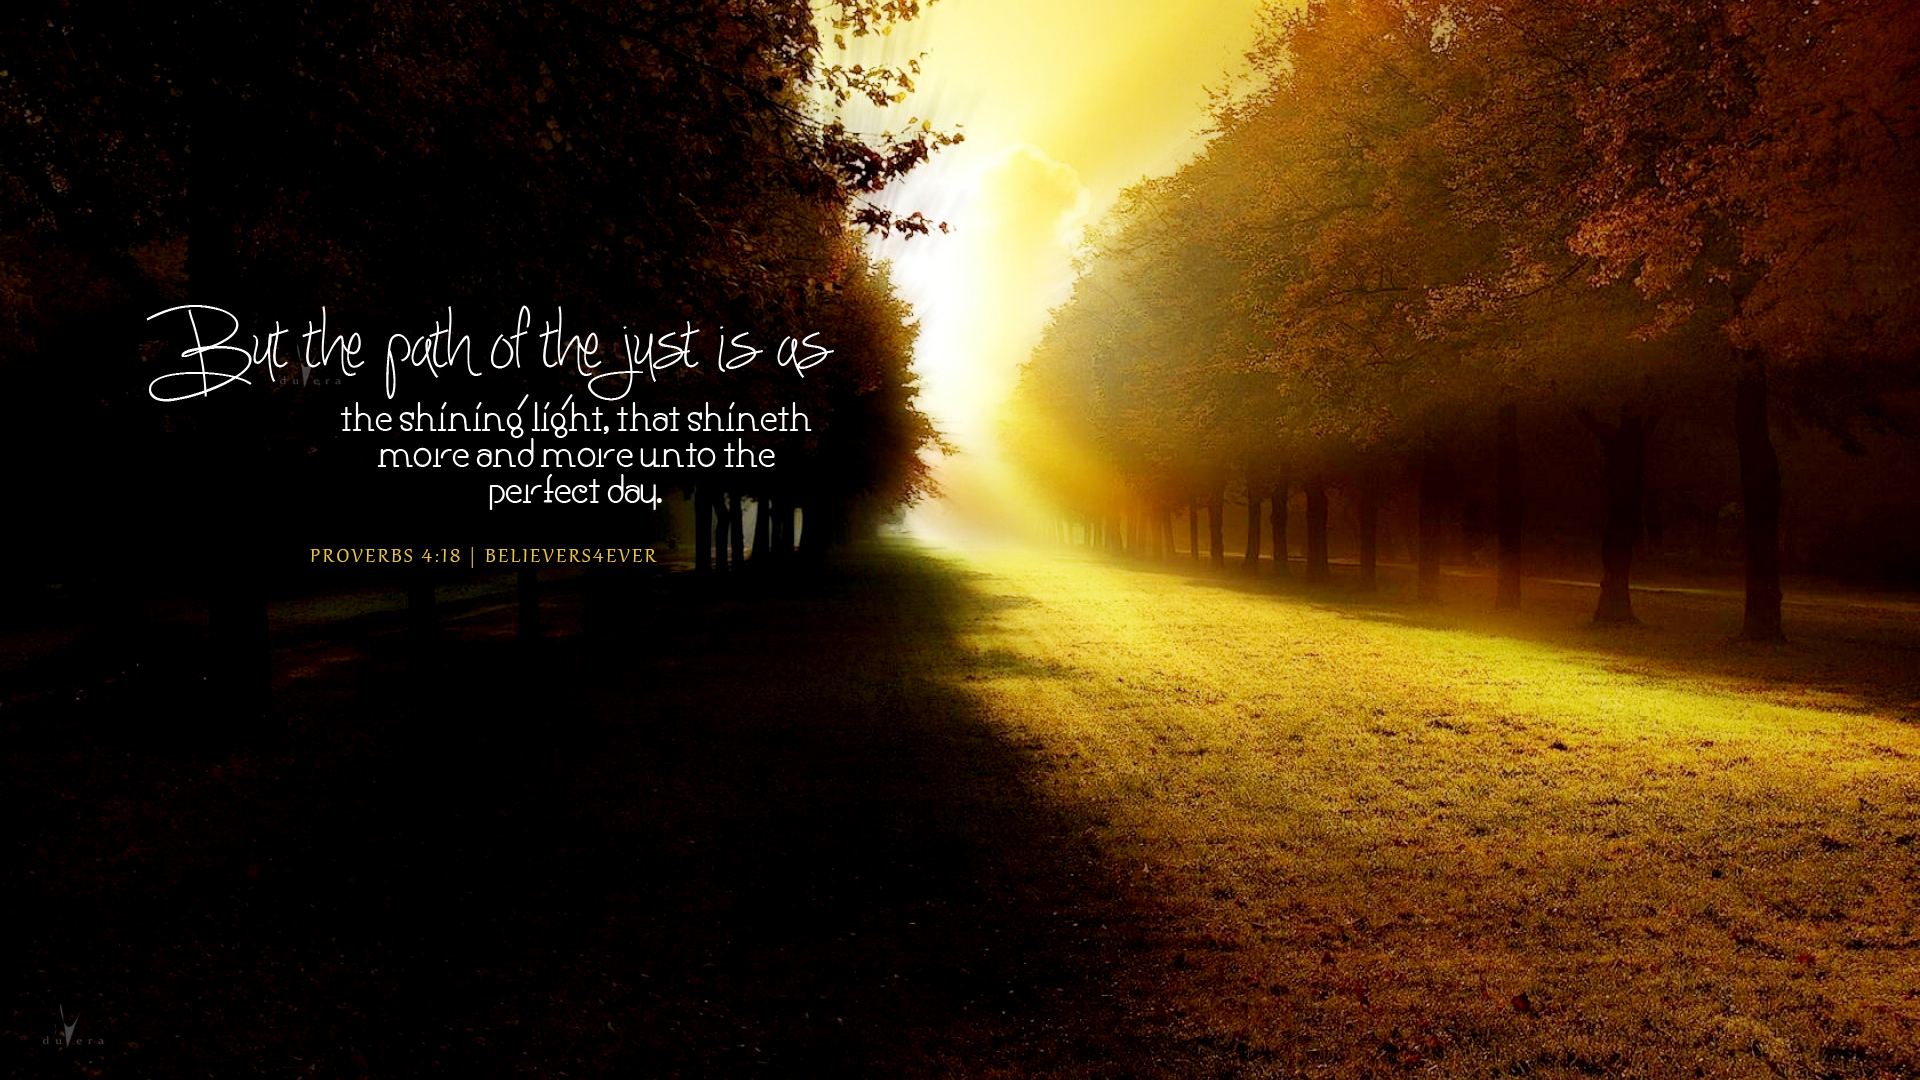 But-the-path-of-the-just-is-as-the-shining-light-that-shineth-more-and-more-unto-the-perfect-day-P-wallpaper-wpc5803100